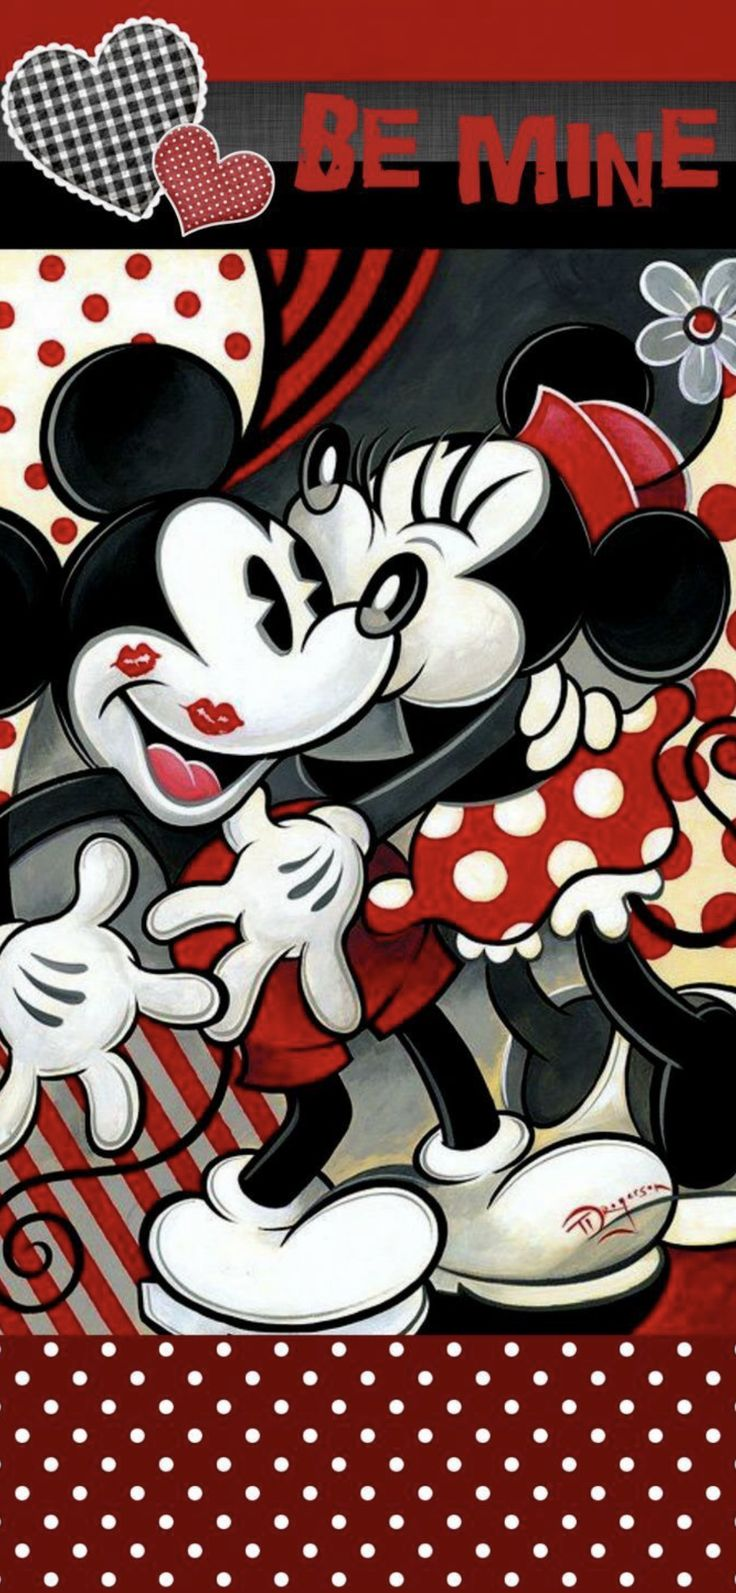 wallpaper iphone x Mickey mouse wallpaper, Minnie, Mickey